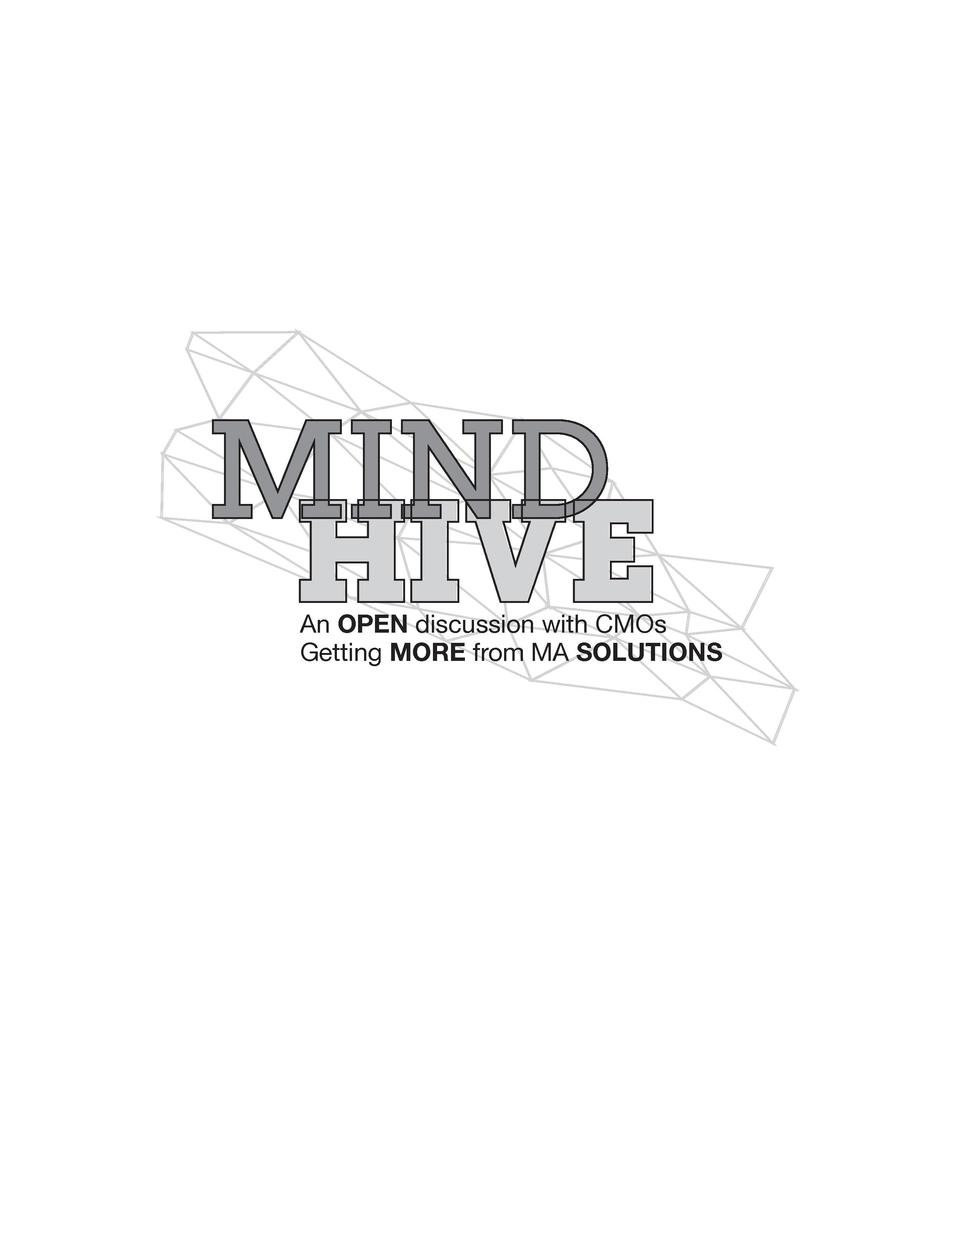 MIND  HIVE  An OPEN discussion with CMOs Getting MORE from MA SOLUTIONS